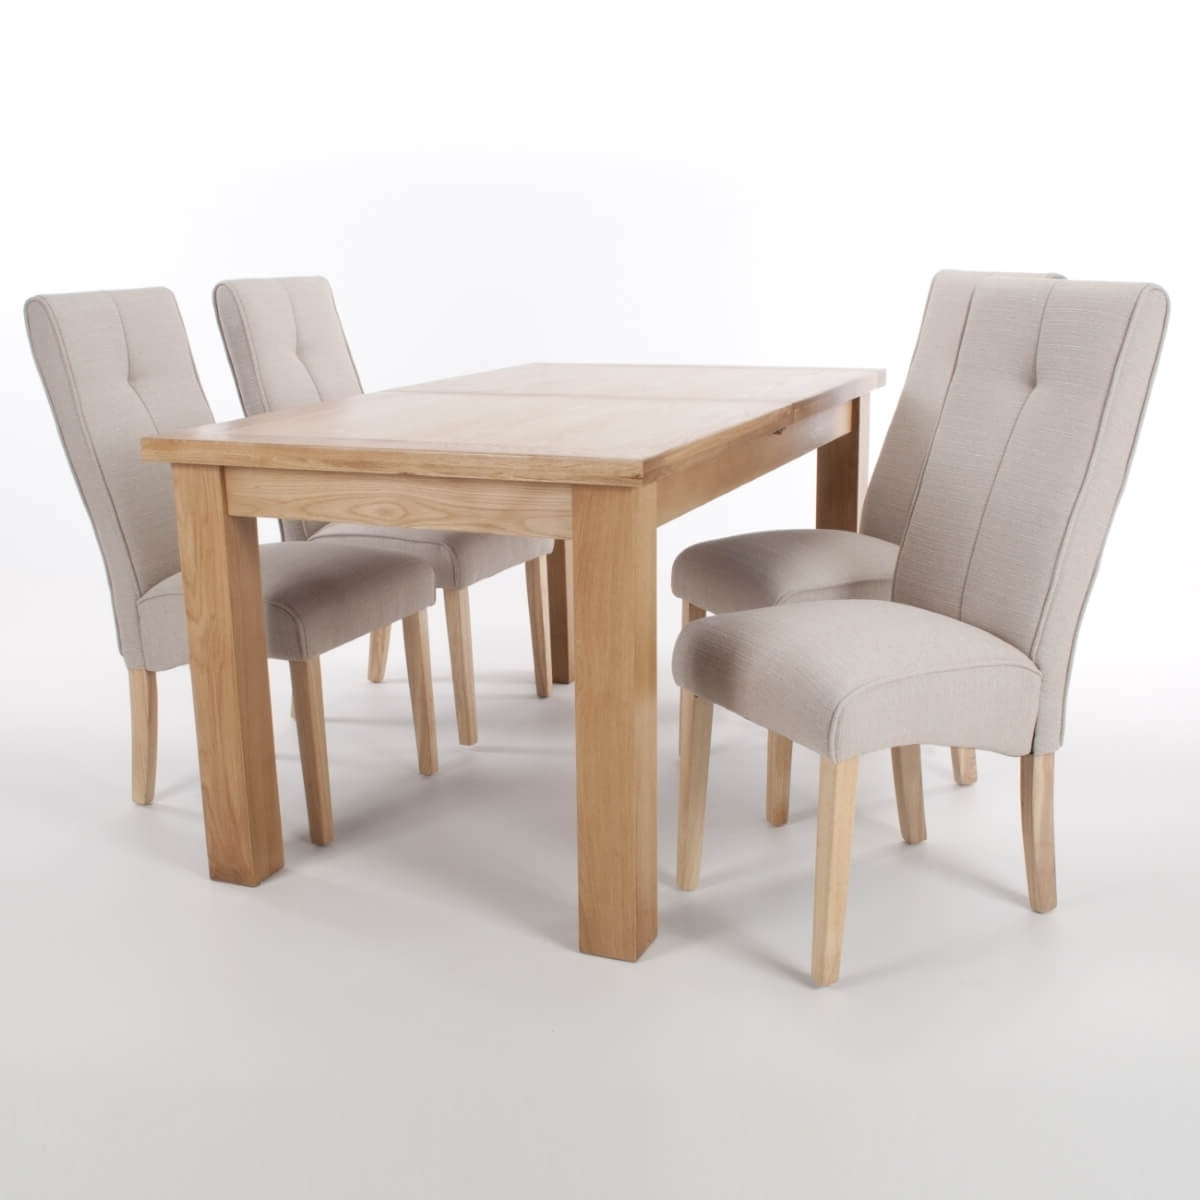 Oak Extending Dining Tables And 4 Chairs With Regard To 2018 Dining Set – Solid Oak Extending Dining Table And 4 Linea Cream (View 25 of 25)